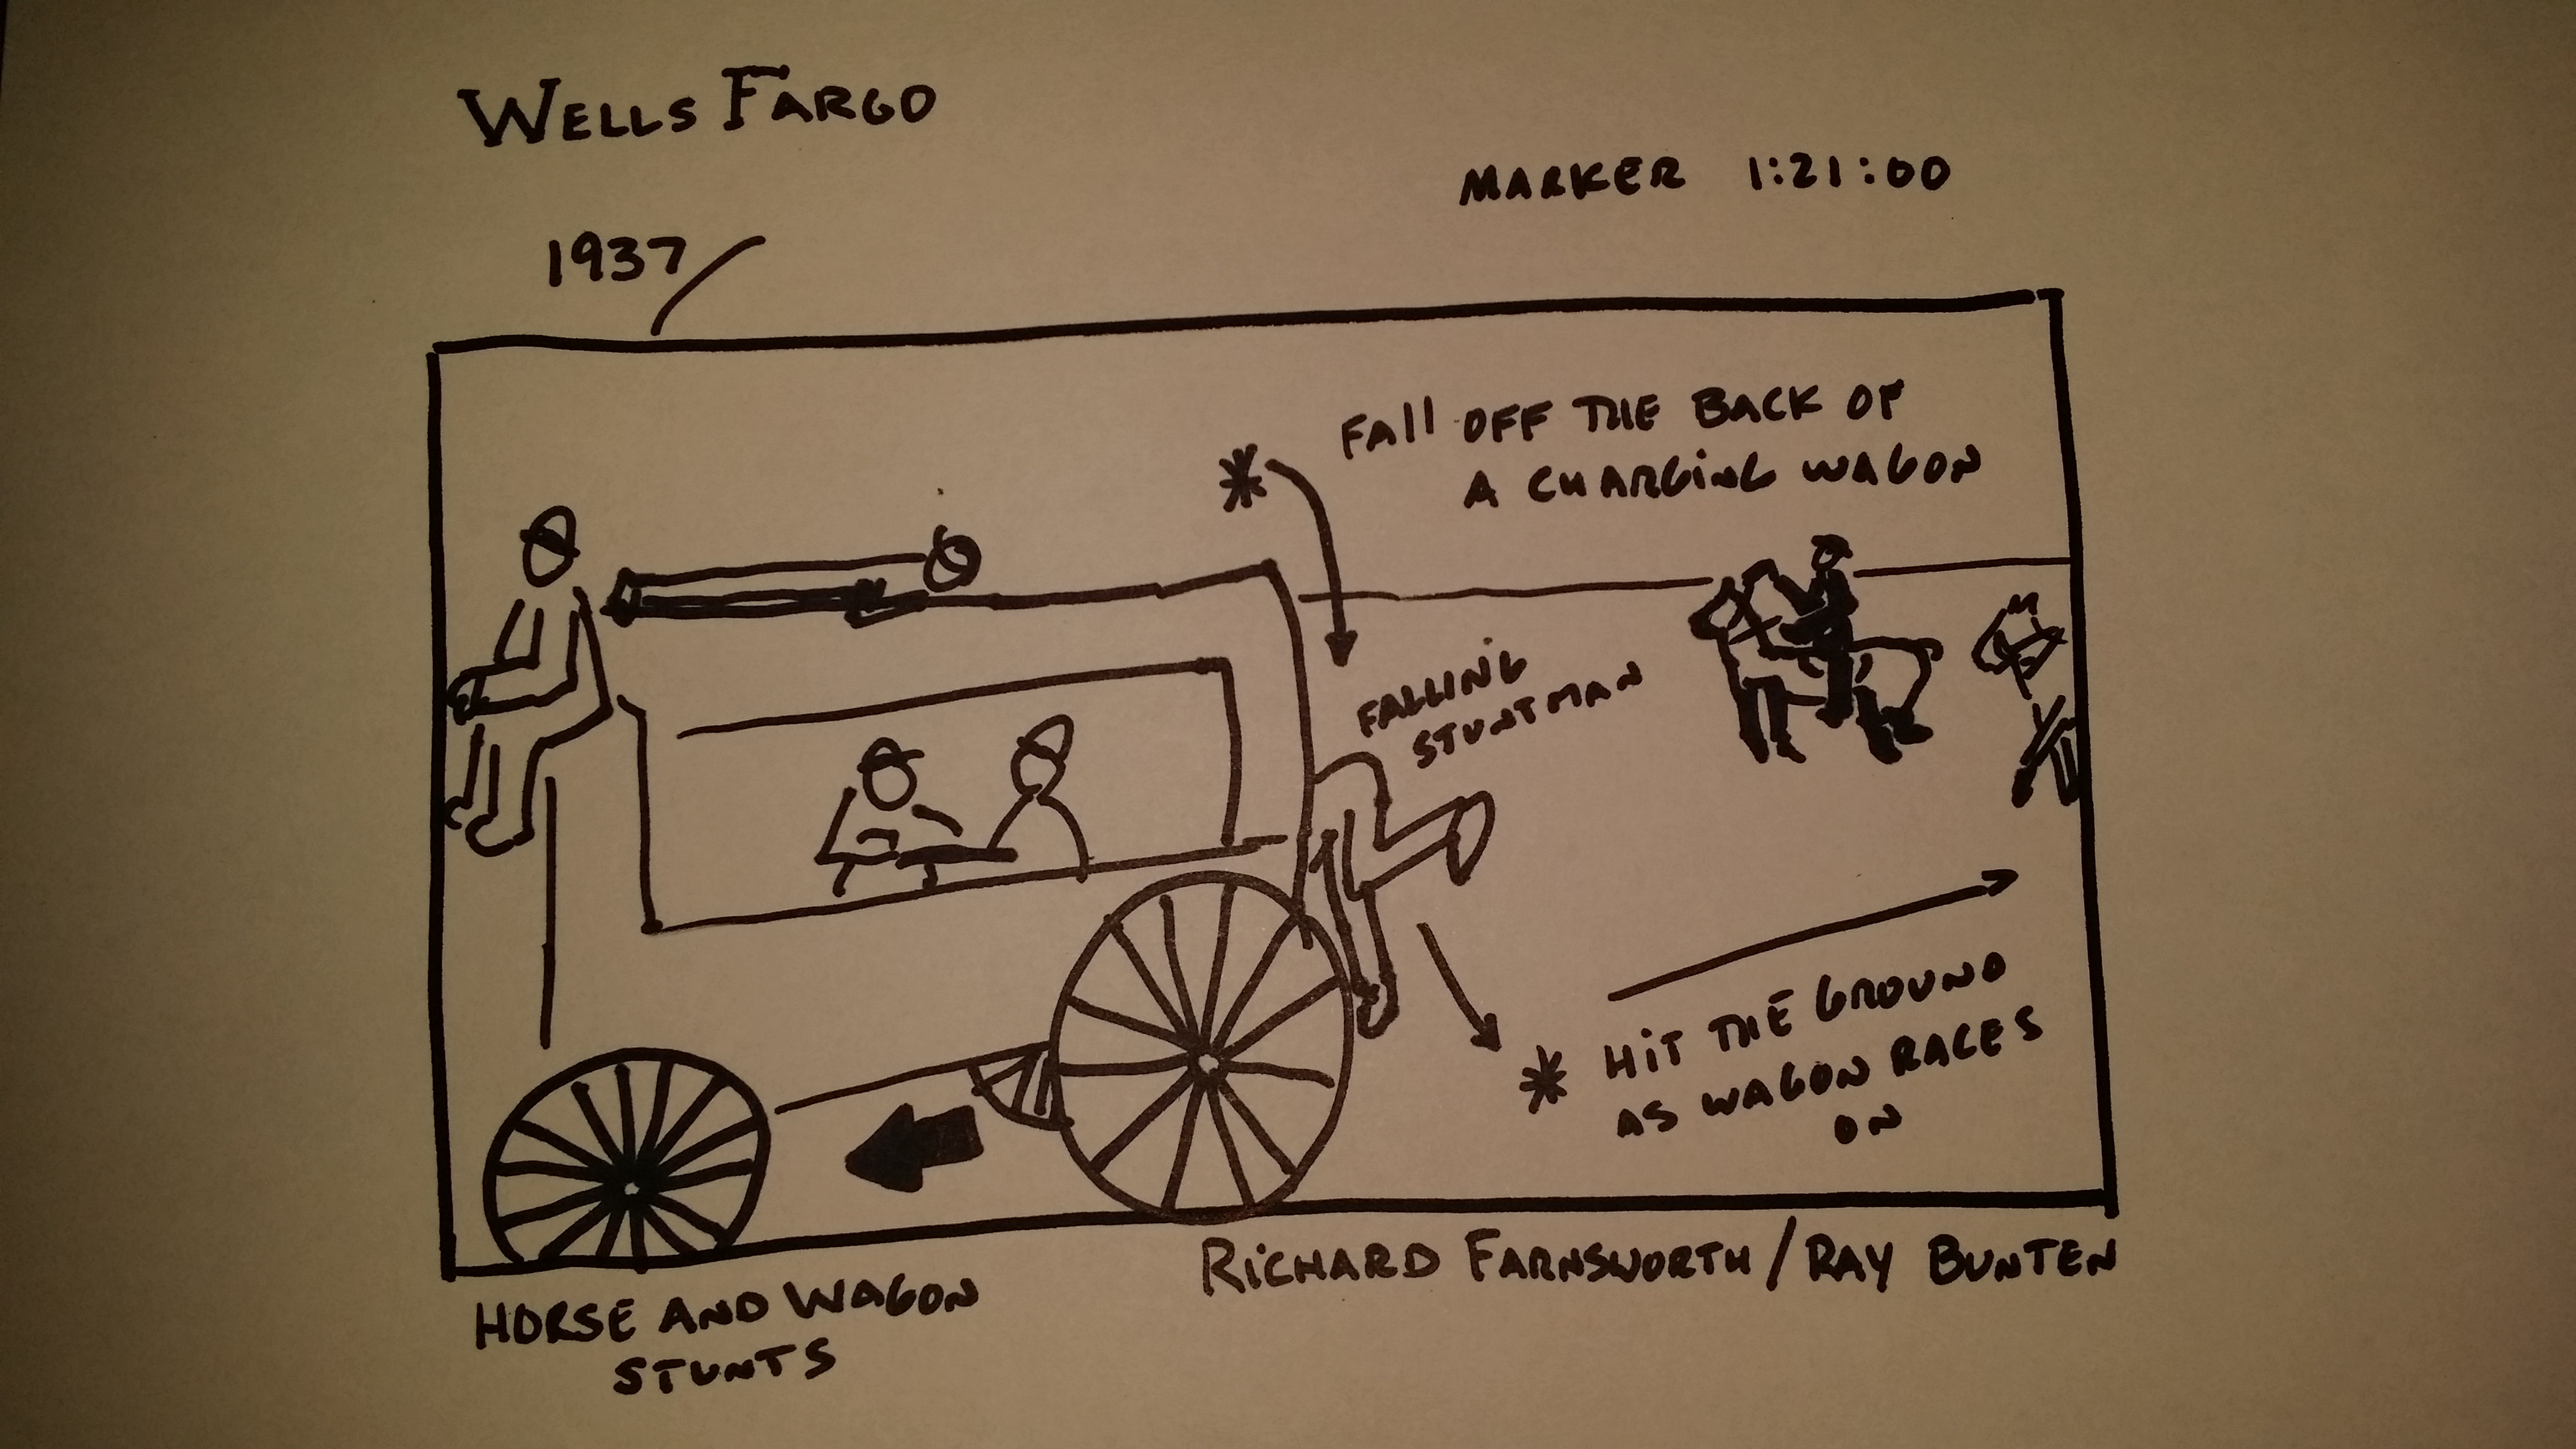 wells fargo storyboard